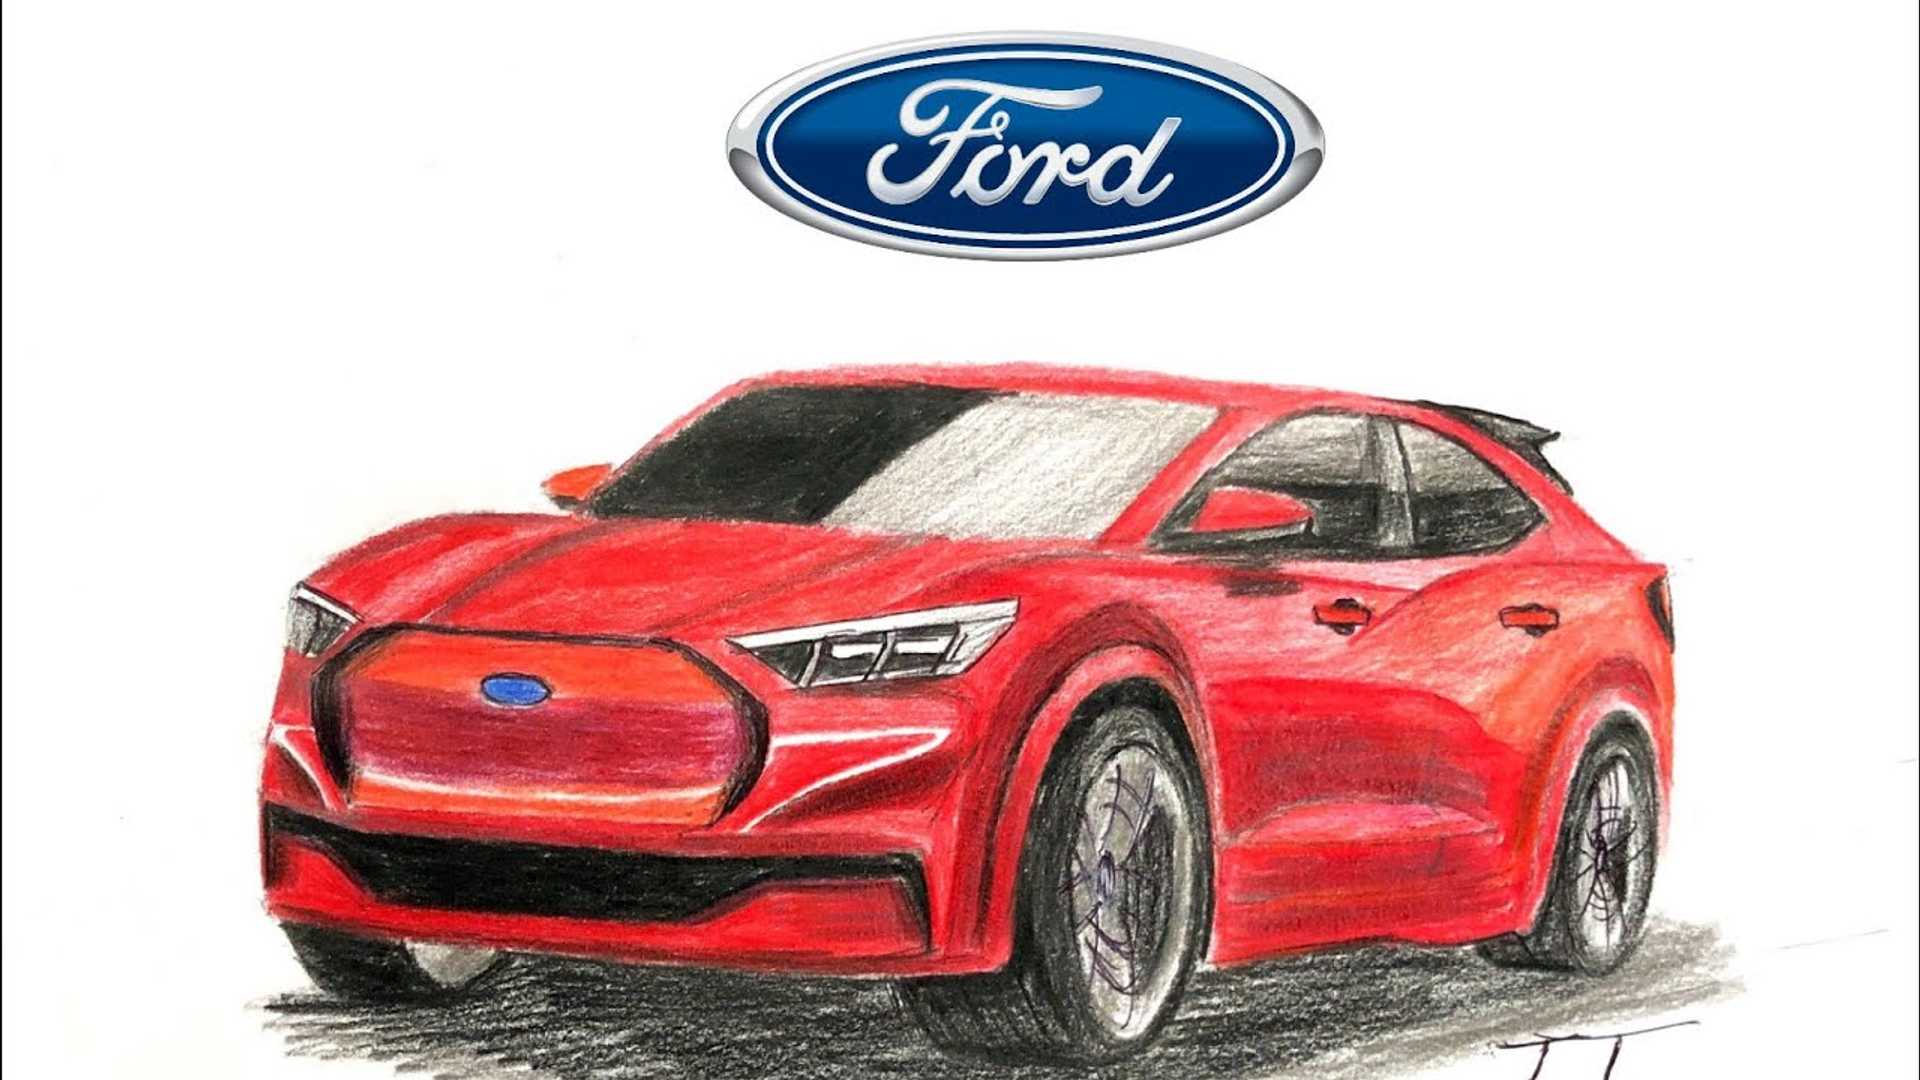 Ford Electric Car >> Ford Mustang Inspired Electric Suv Rendered To Life From Teasers